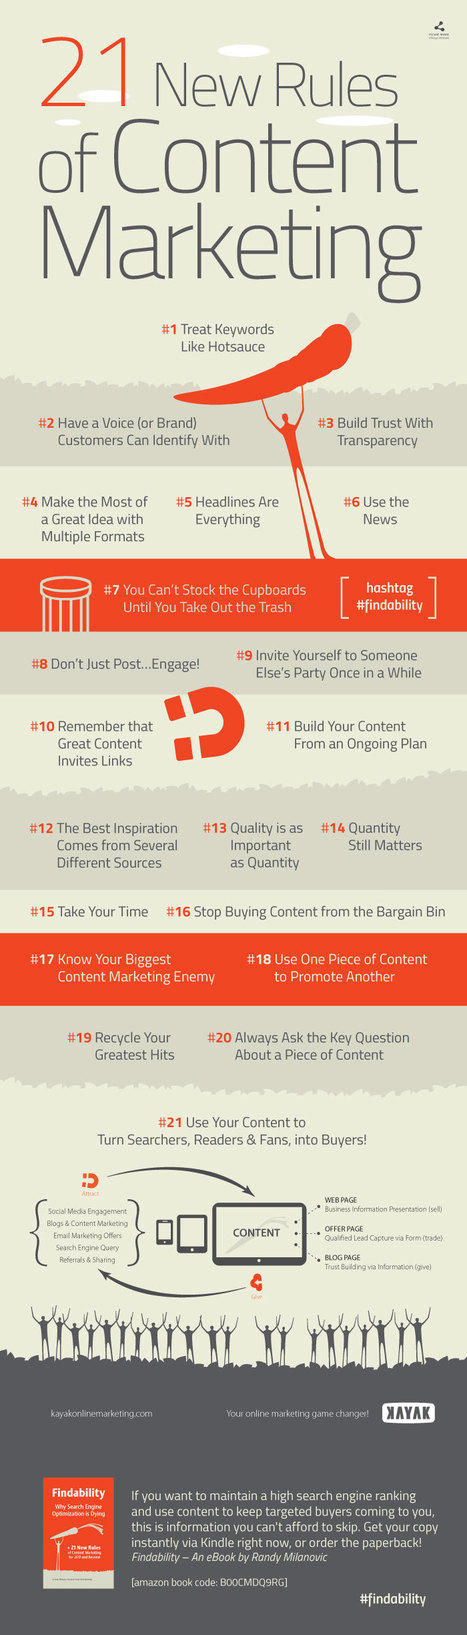 The 21 New Rules of Content Marketing [INFOGRAPHIC] | 21st_Century Good: Social and Content | Scoop.it